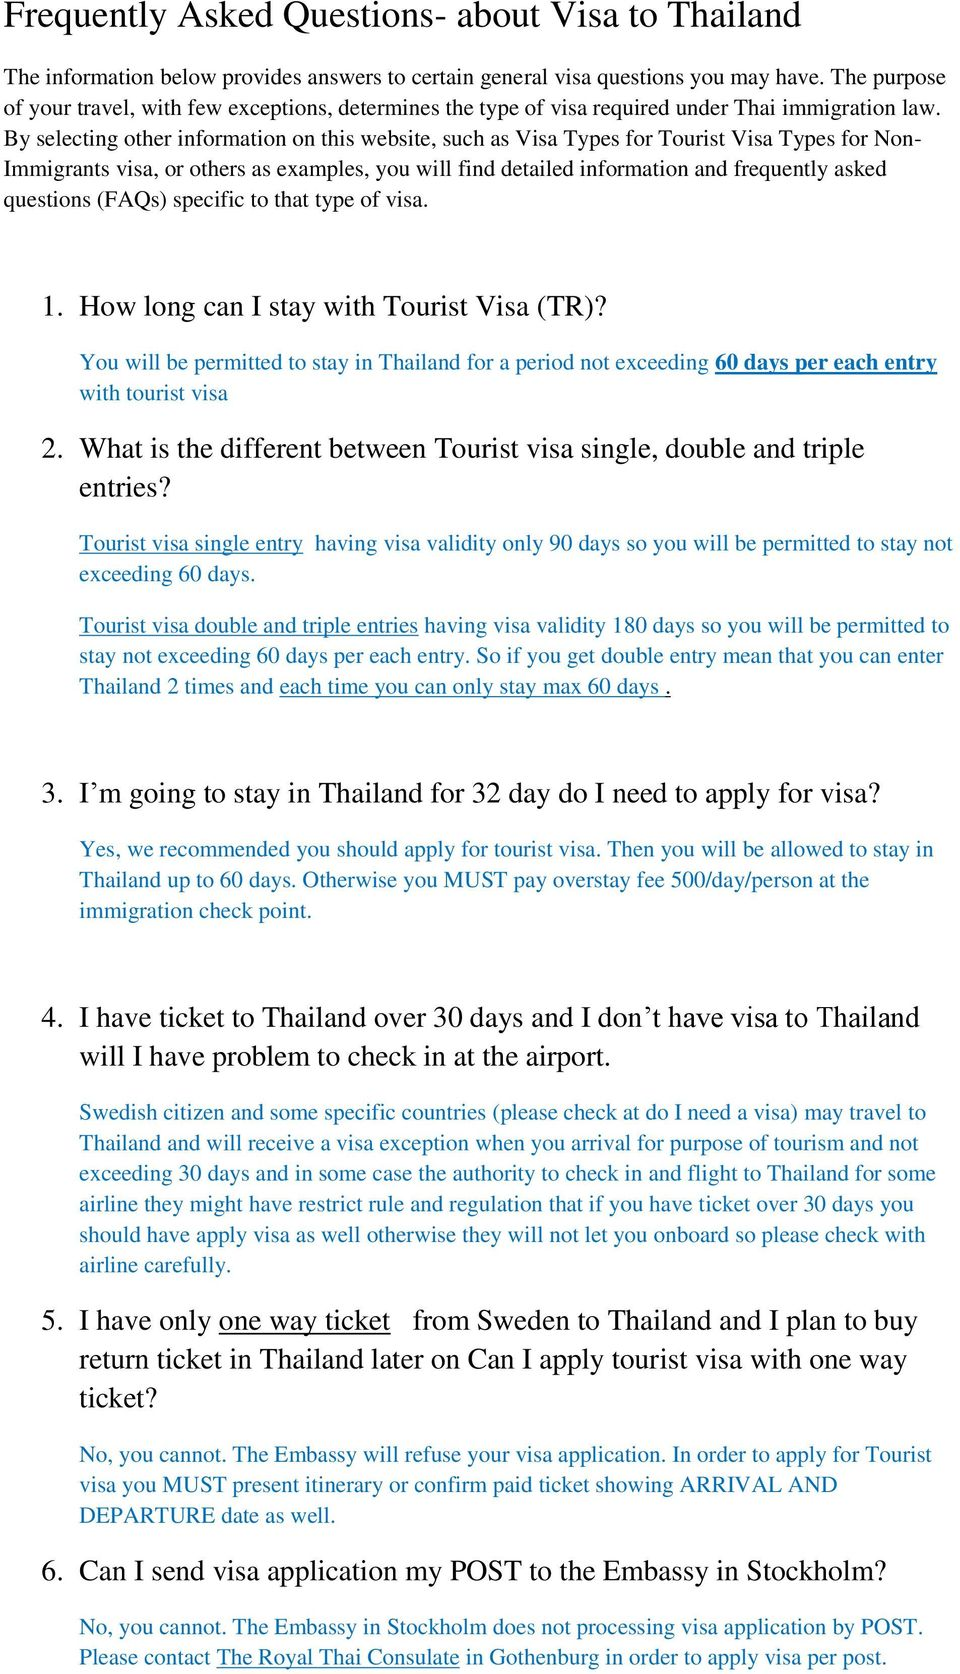 Frequently Asked Questions- about Visa to Thailand - PDF